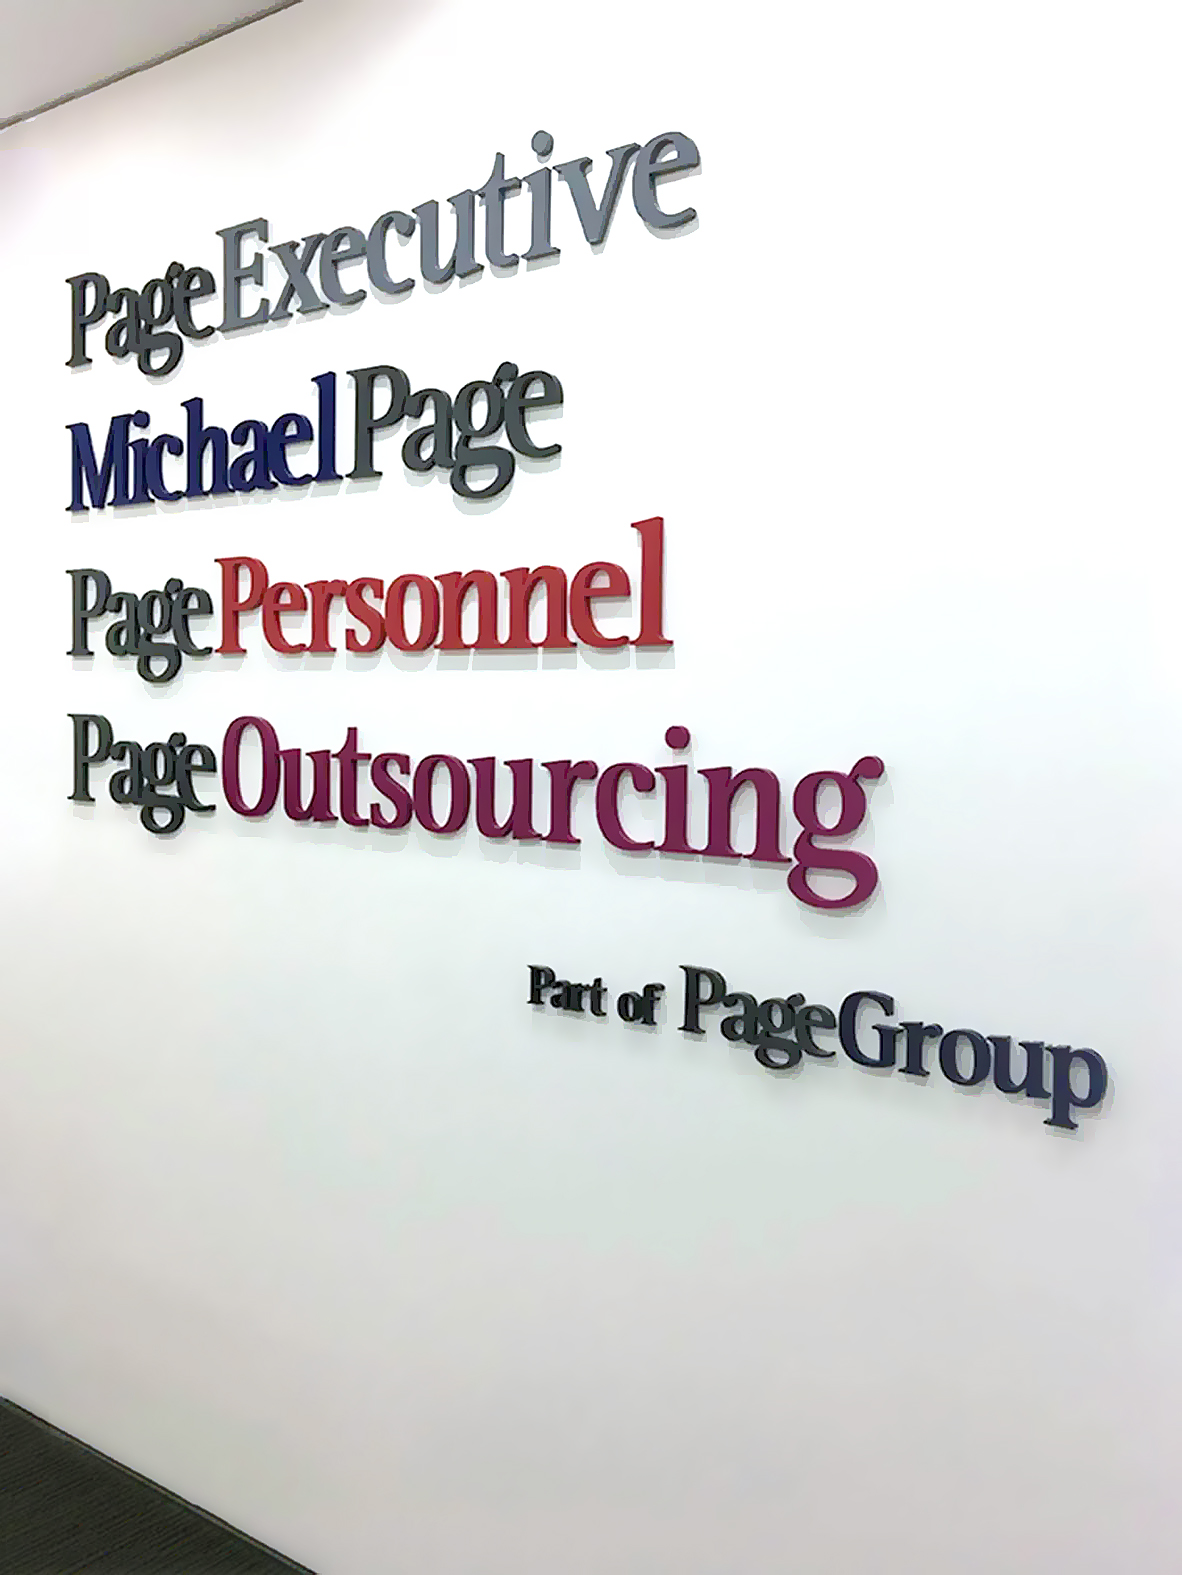 PageGroup announce a final dividend of 9.40 pence per share, an increase of 4.4%